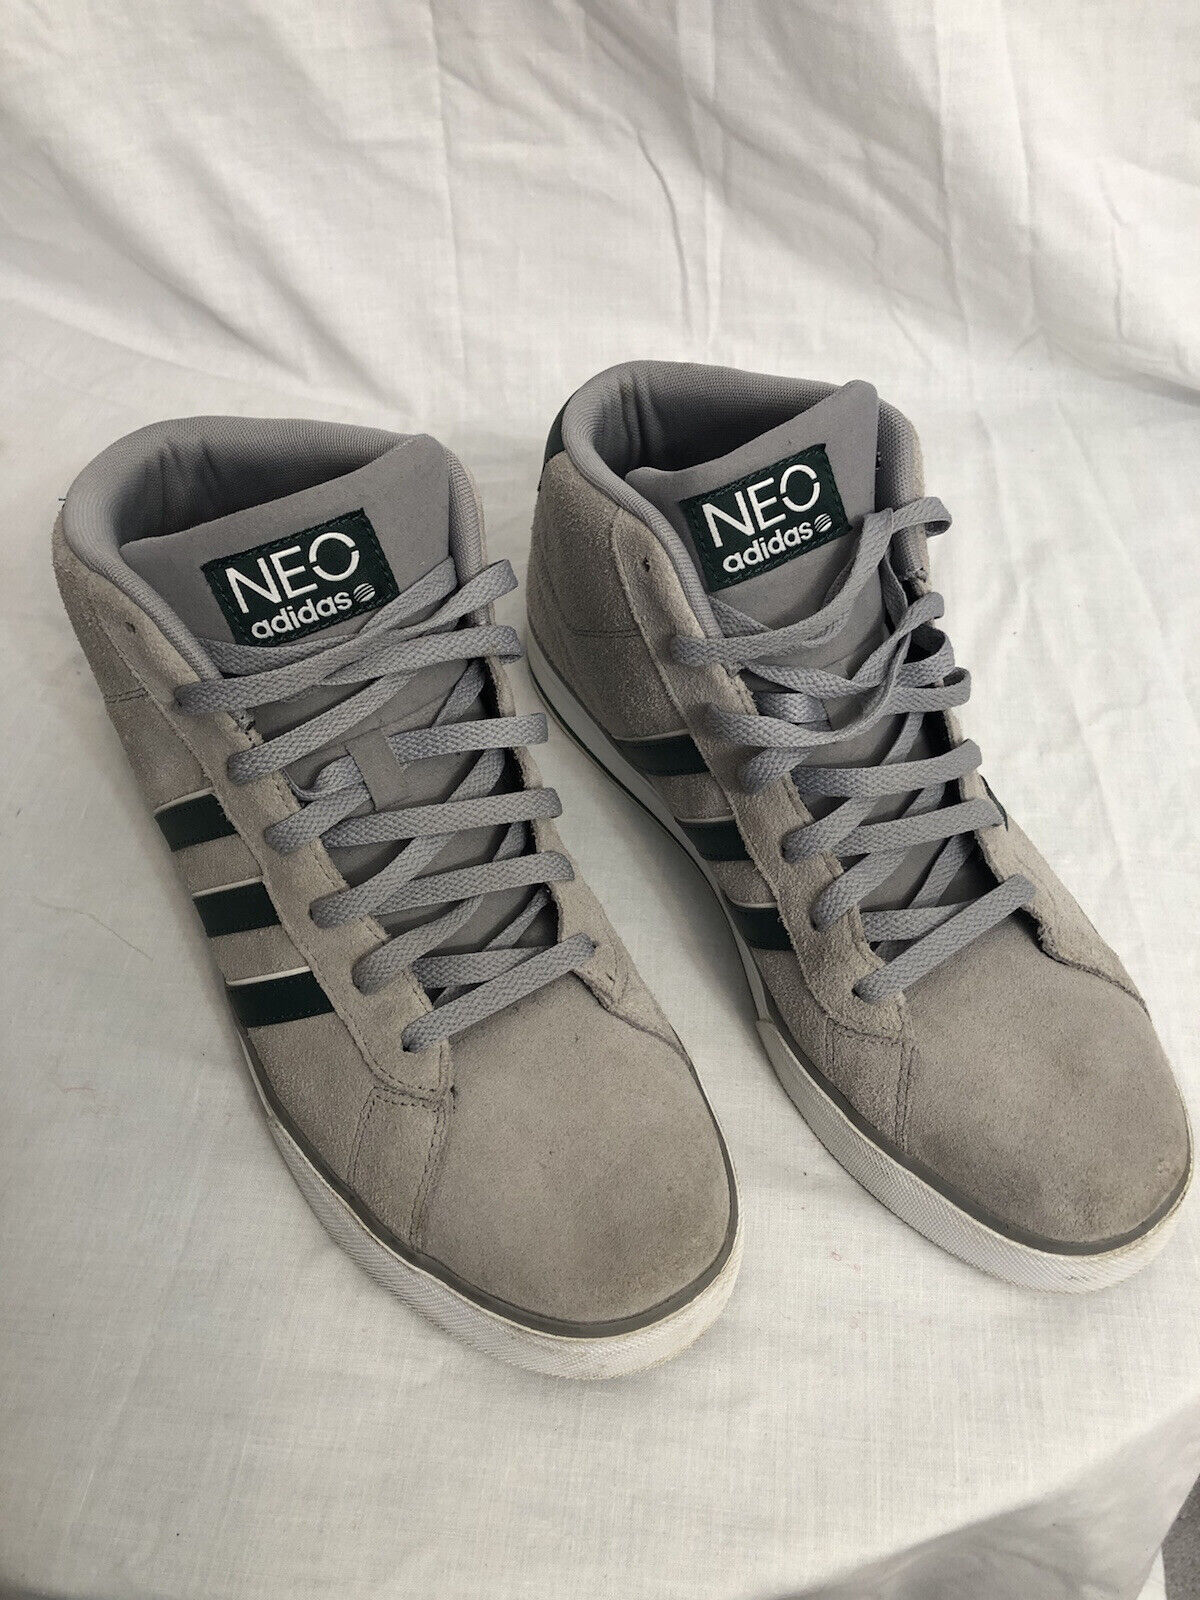 Adidas High Top Neo Label Ortholite Gray & Green Sued… - Gem